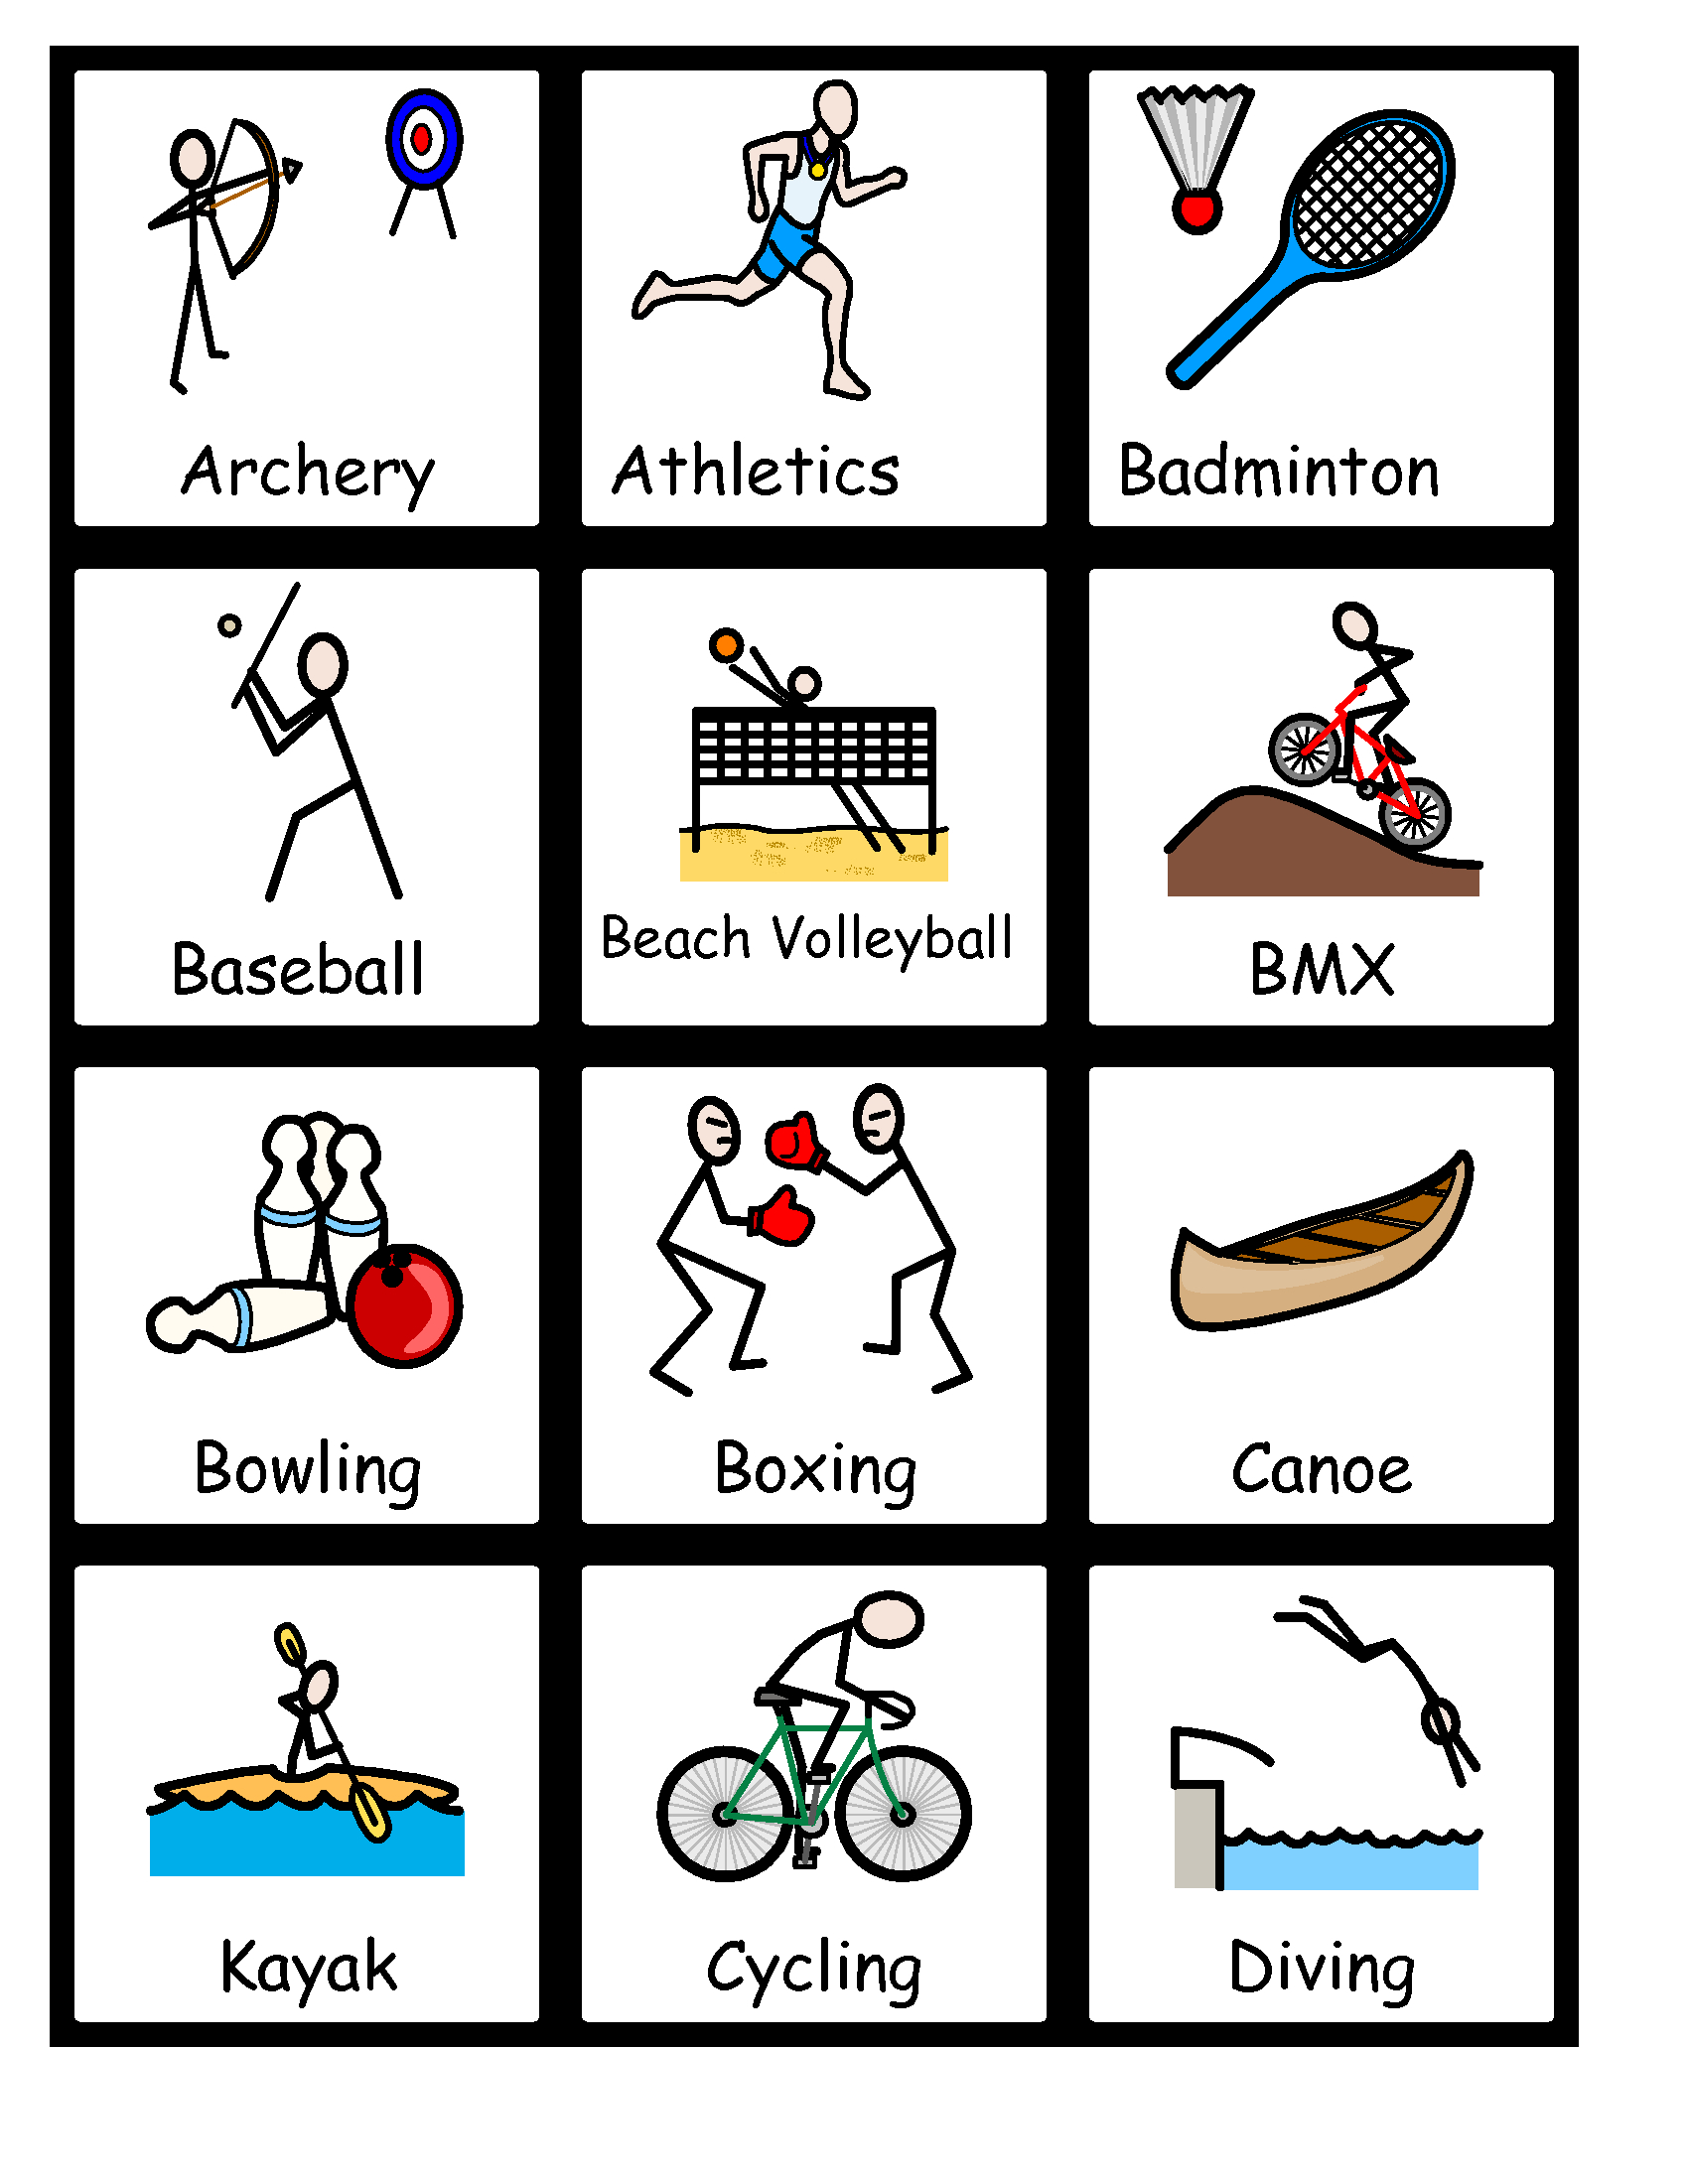 Free Symbolized Resources For 2015 Pan Am Games – Bridges News - Free Printable Widgit Symbols